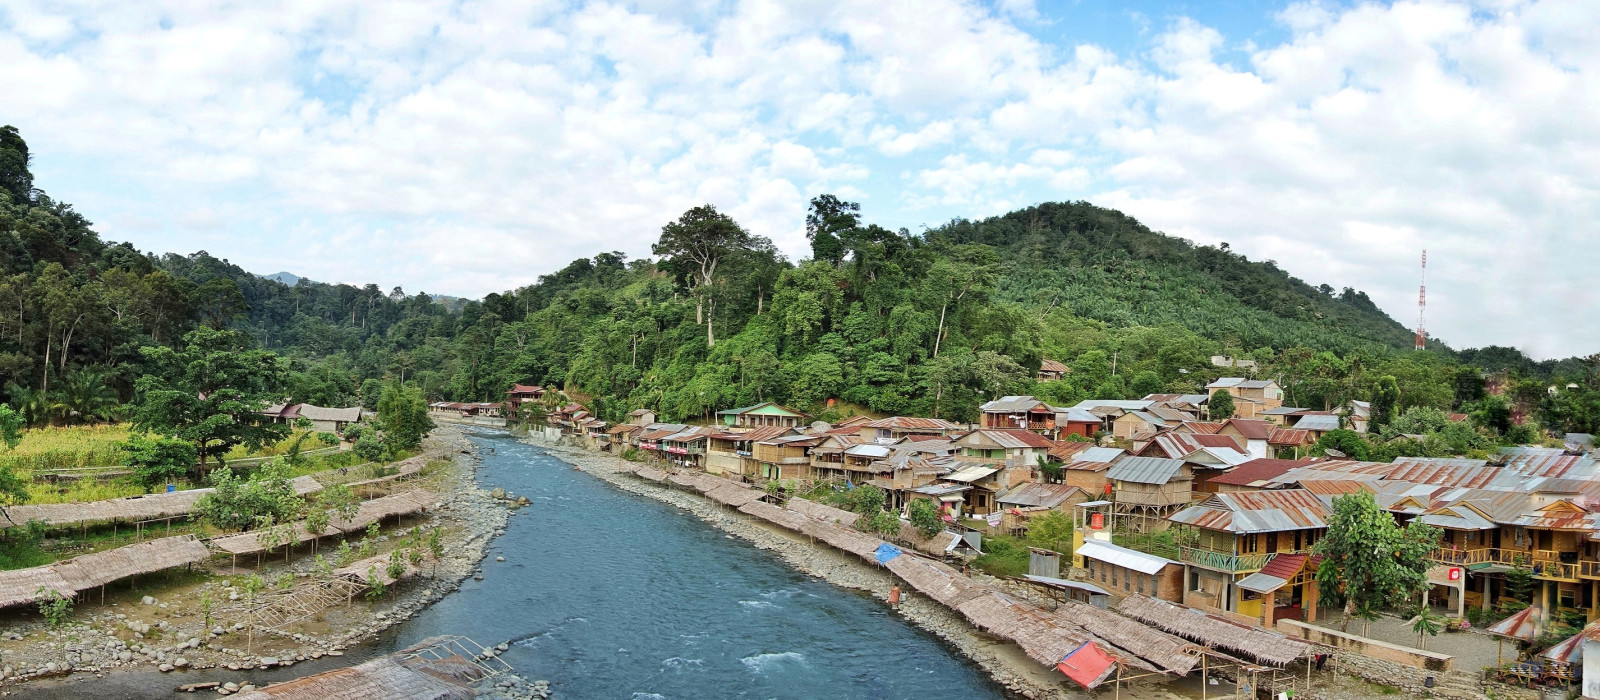 Hotel The Heritage Resort & Restaurant Bukit Lawang Indonesien